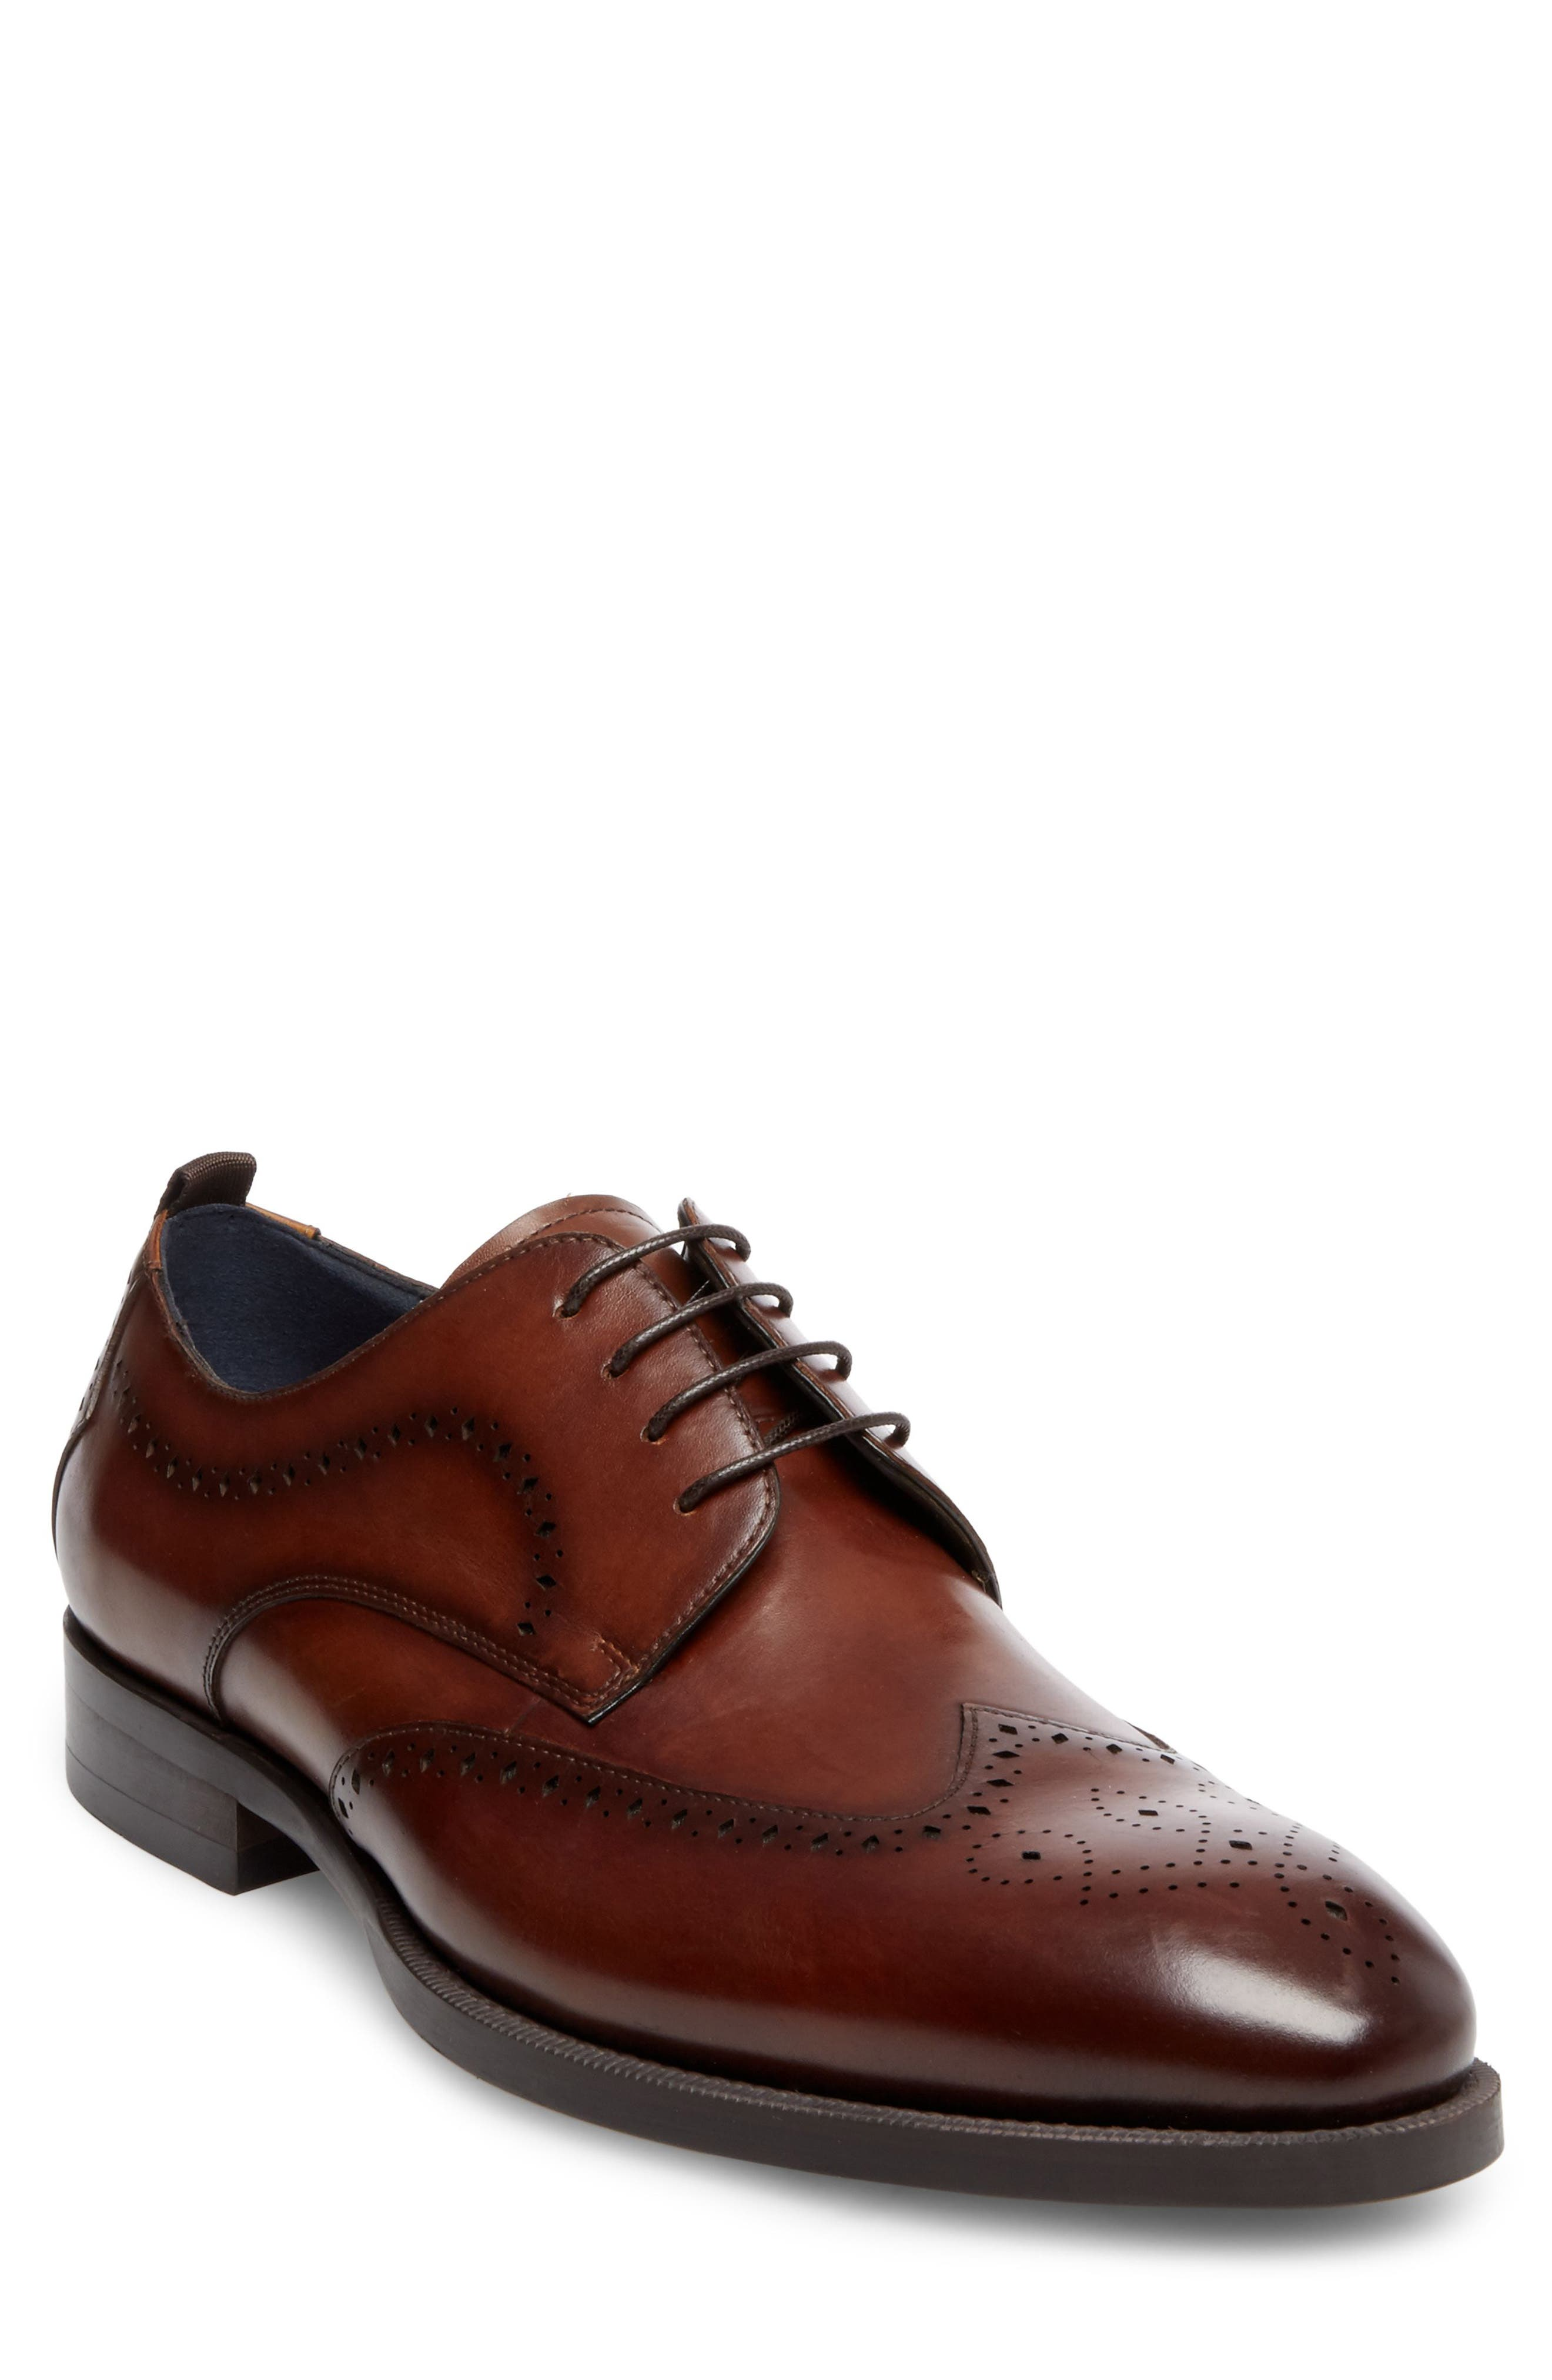 Candyd Wingtip,                         Main,                         color, Brown Leather